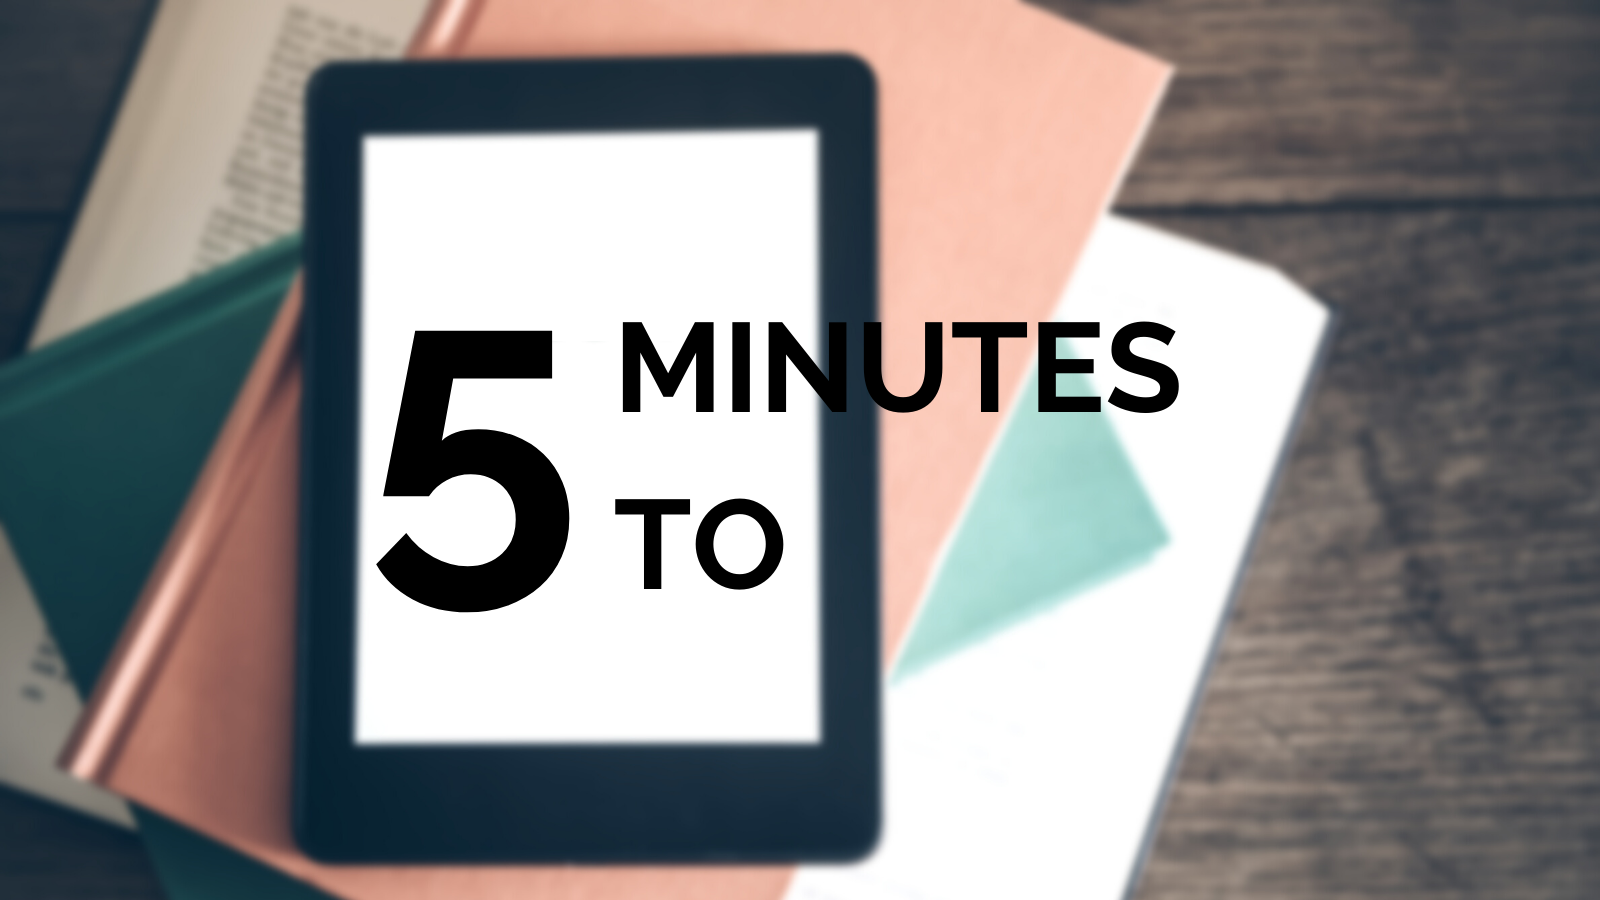 5 Minutes To: Writing the Perfect eBook